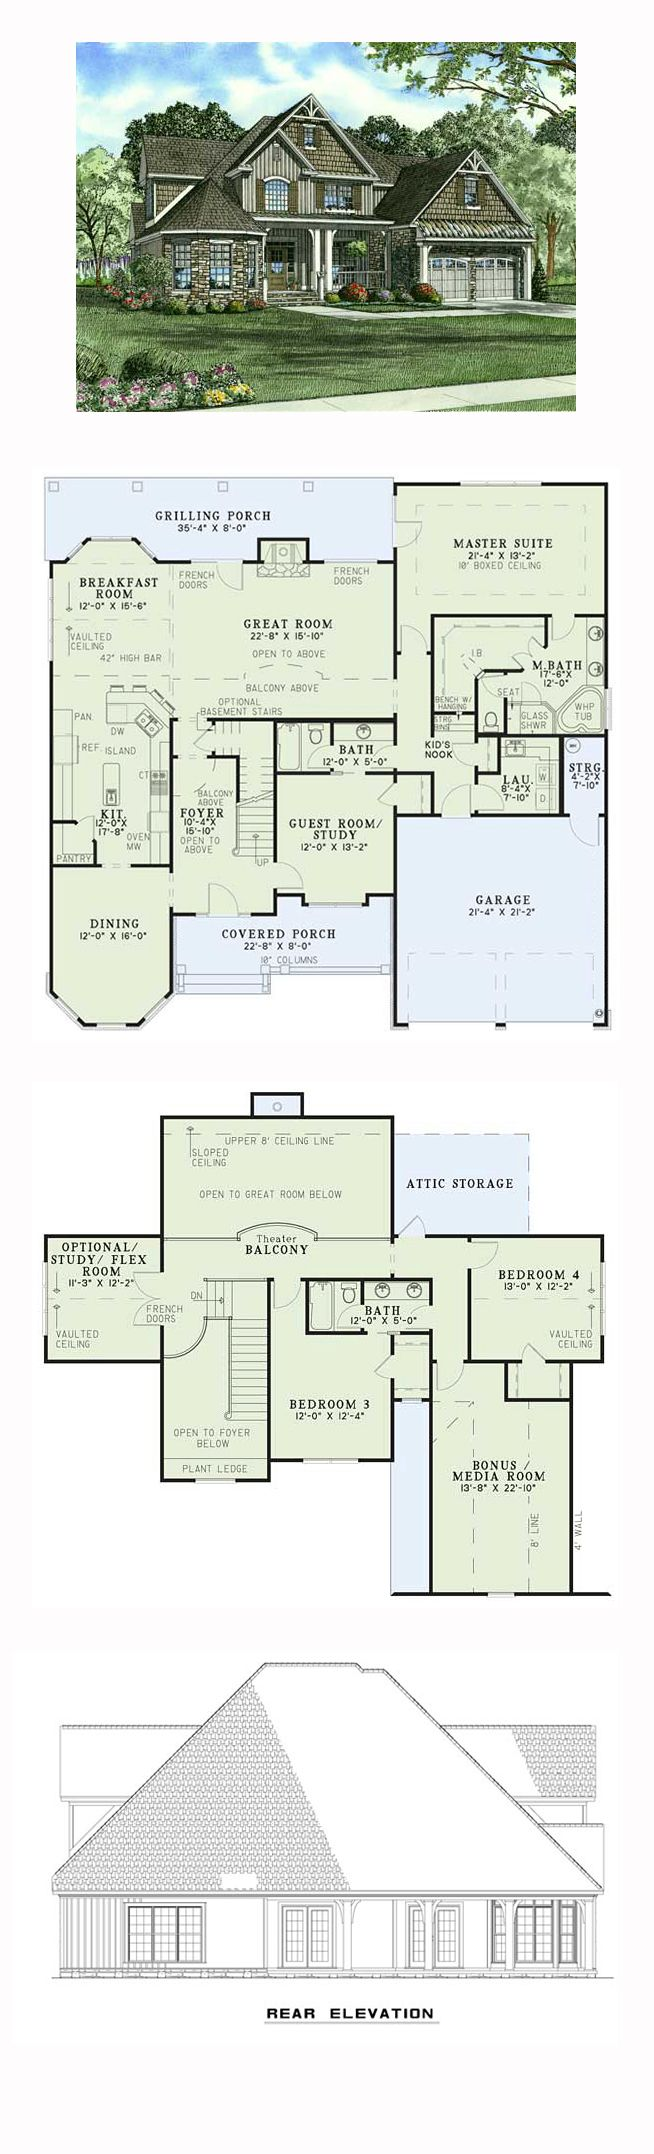 16 best images about craftsman house plans on pinterest for Coolhouseplan com